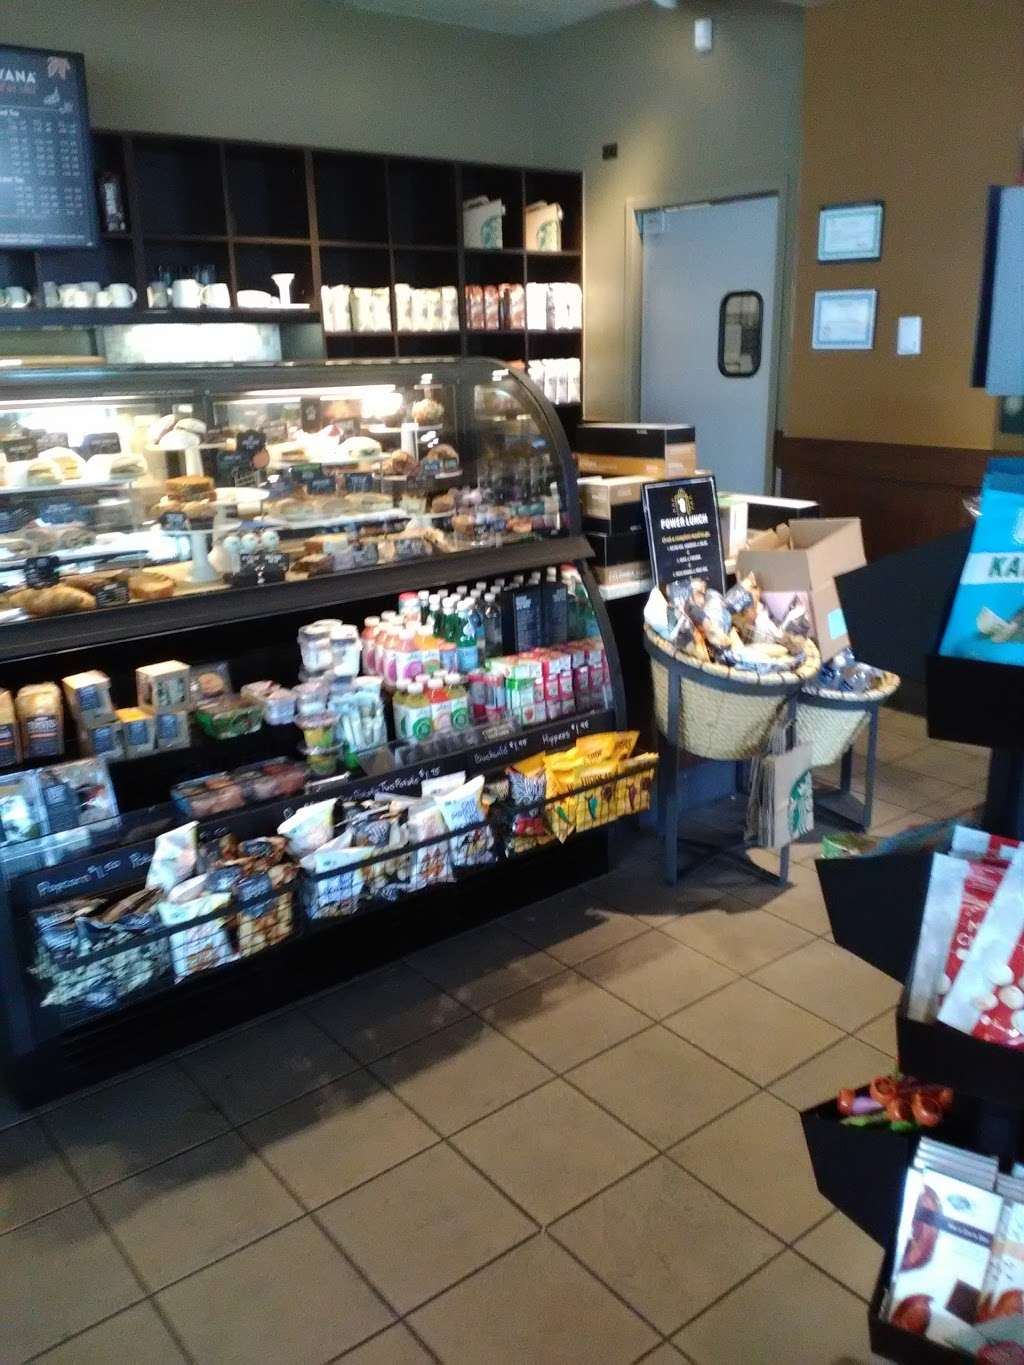 Starbucks - cafe  | Photo 10 of 10 | Address: 4116 Dempster Street, Skokie, IL 60076, USA | Phone: (847) 674-5834